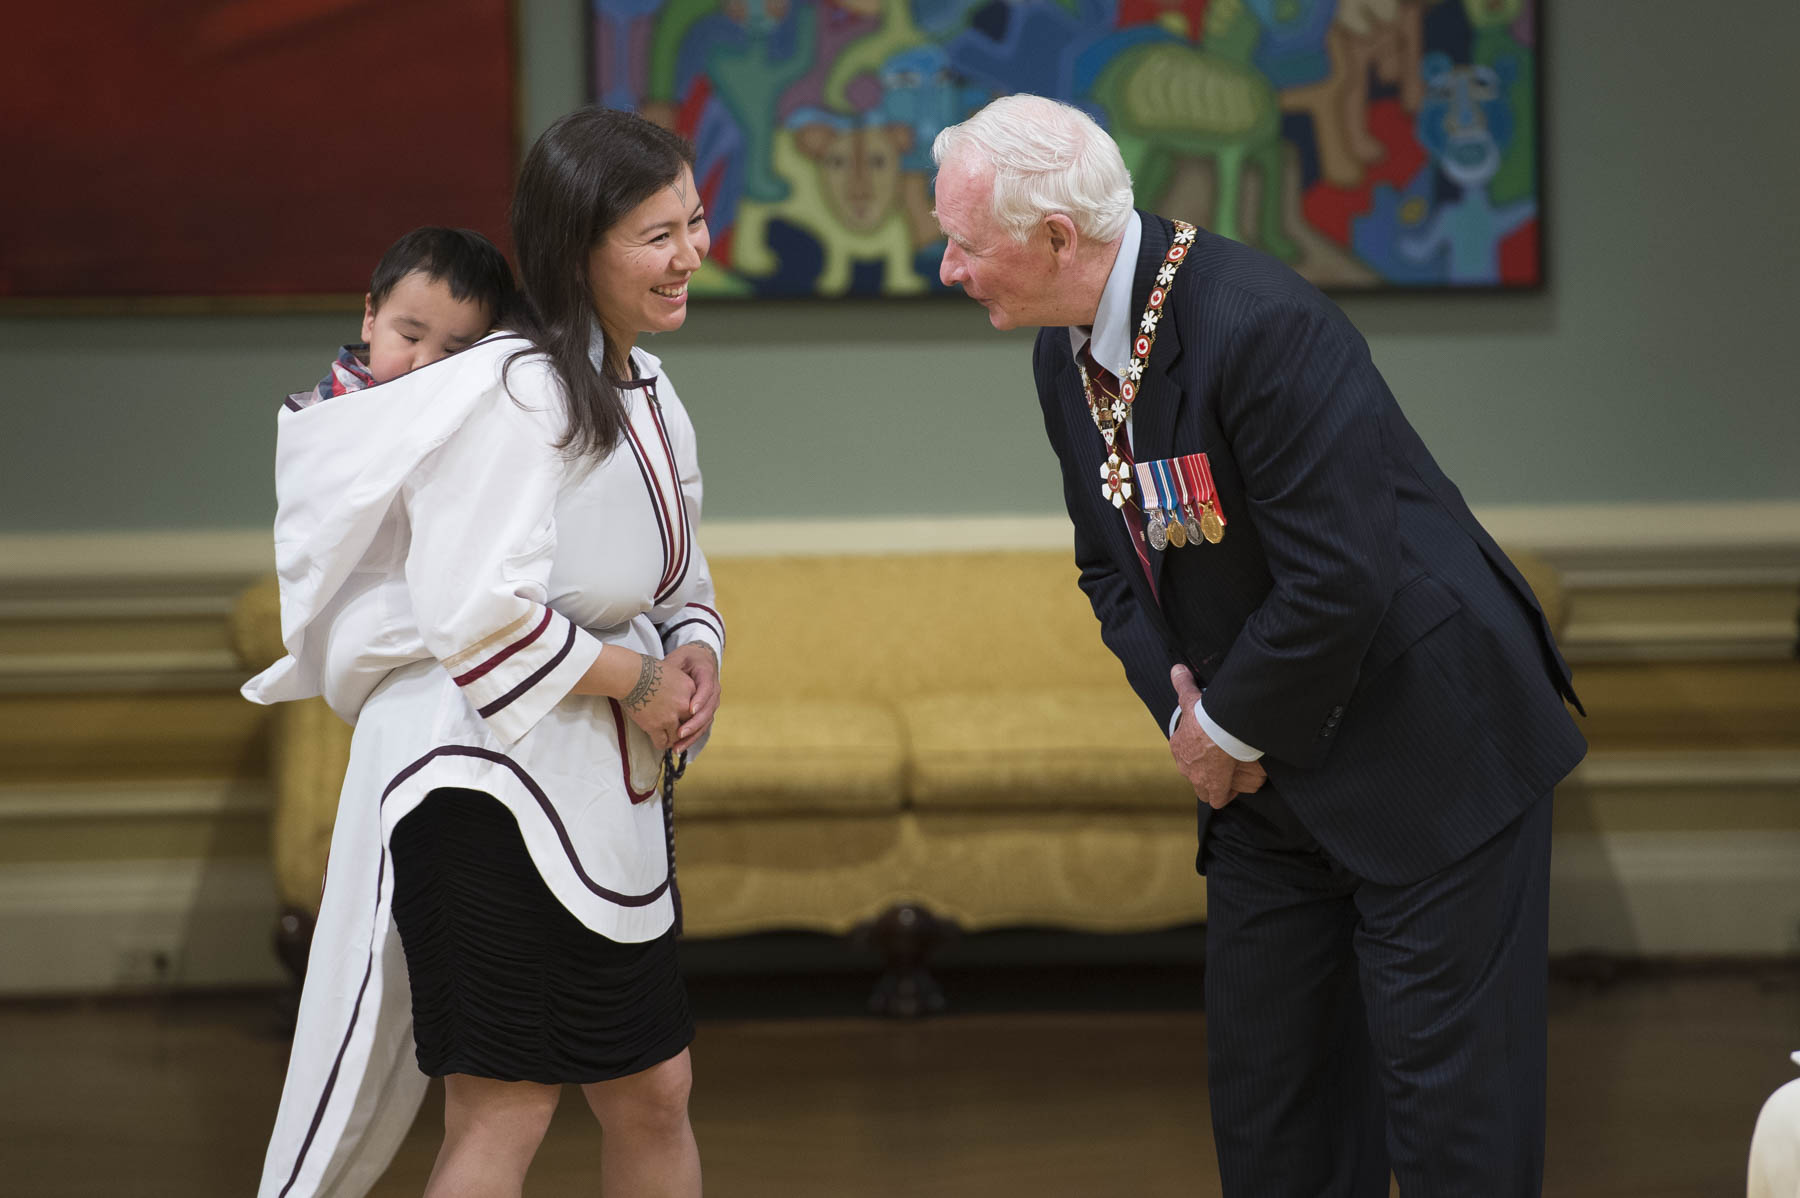 Alethea Arnaquq-Baril received the Meritorious Service Cross (Civil Division). The founder of Unikkaat Studio Inc., Ms. Arnaquq-Baril inspires Inuit communities to reconnect with their ancestral values and lost traditions through her many films. Considered one of Canada's top female directors, she uses her films to document the Inuit language and culture in communities throughout Nunavut.